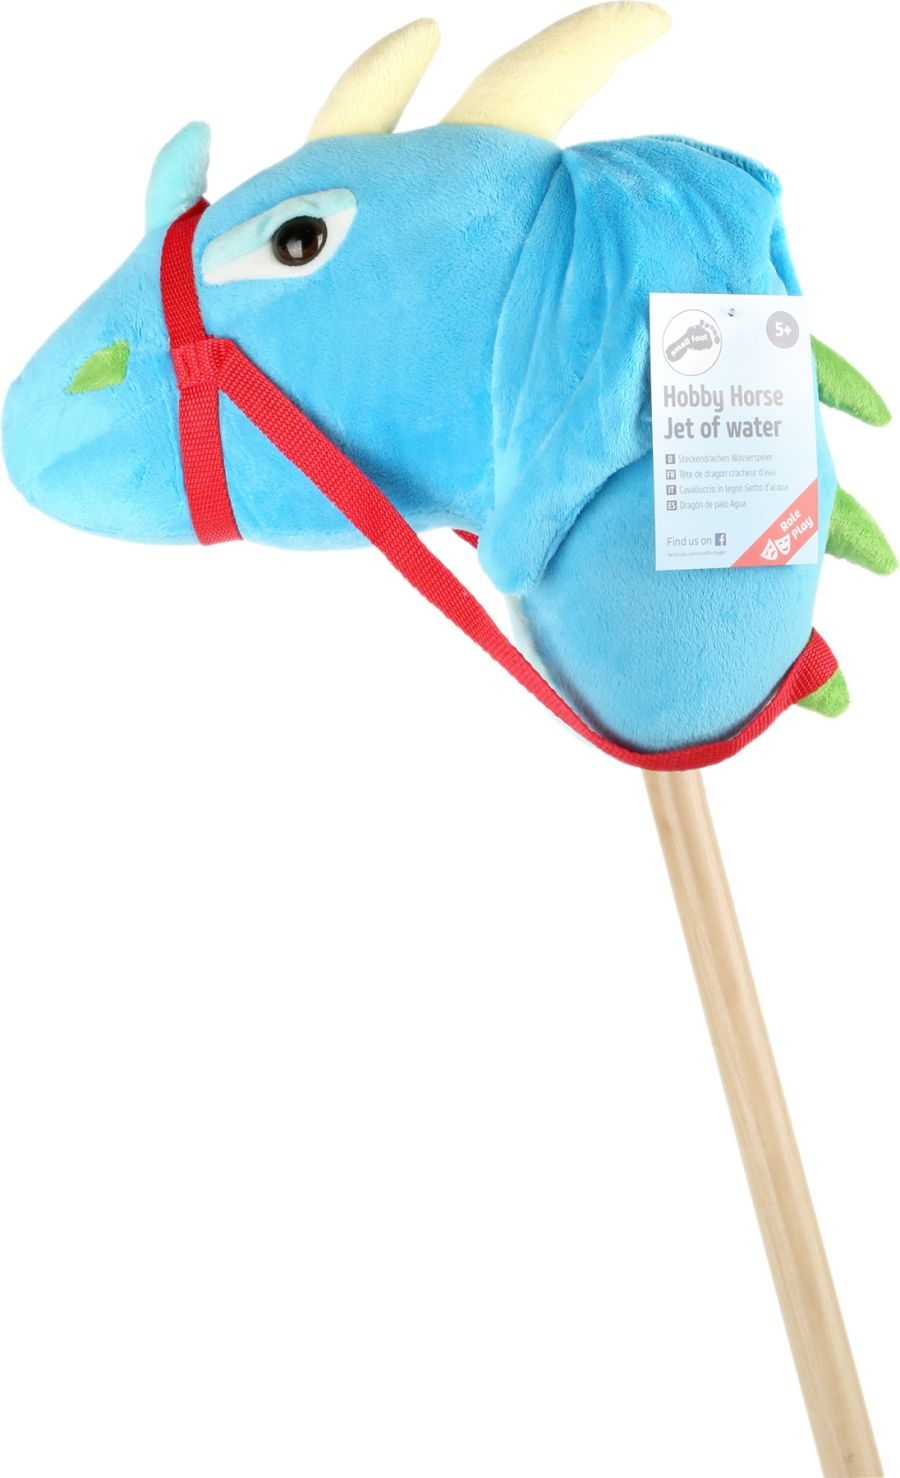 Smallfoot Dragon Hobby Horse